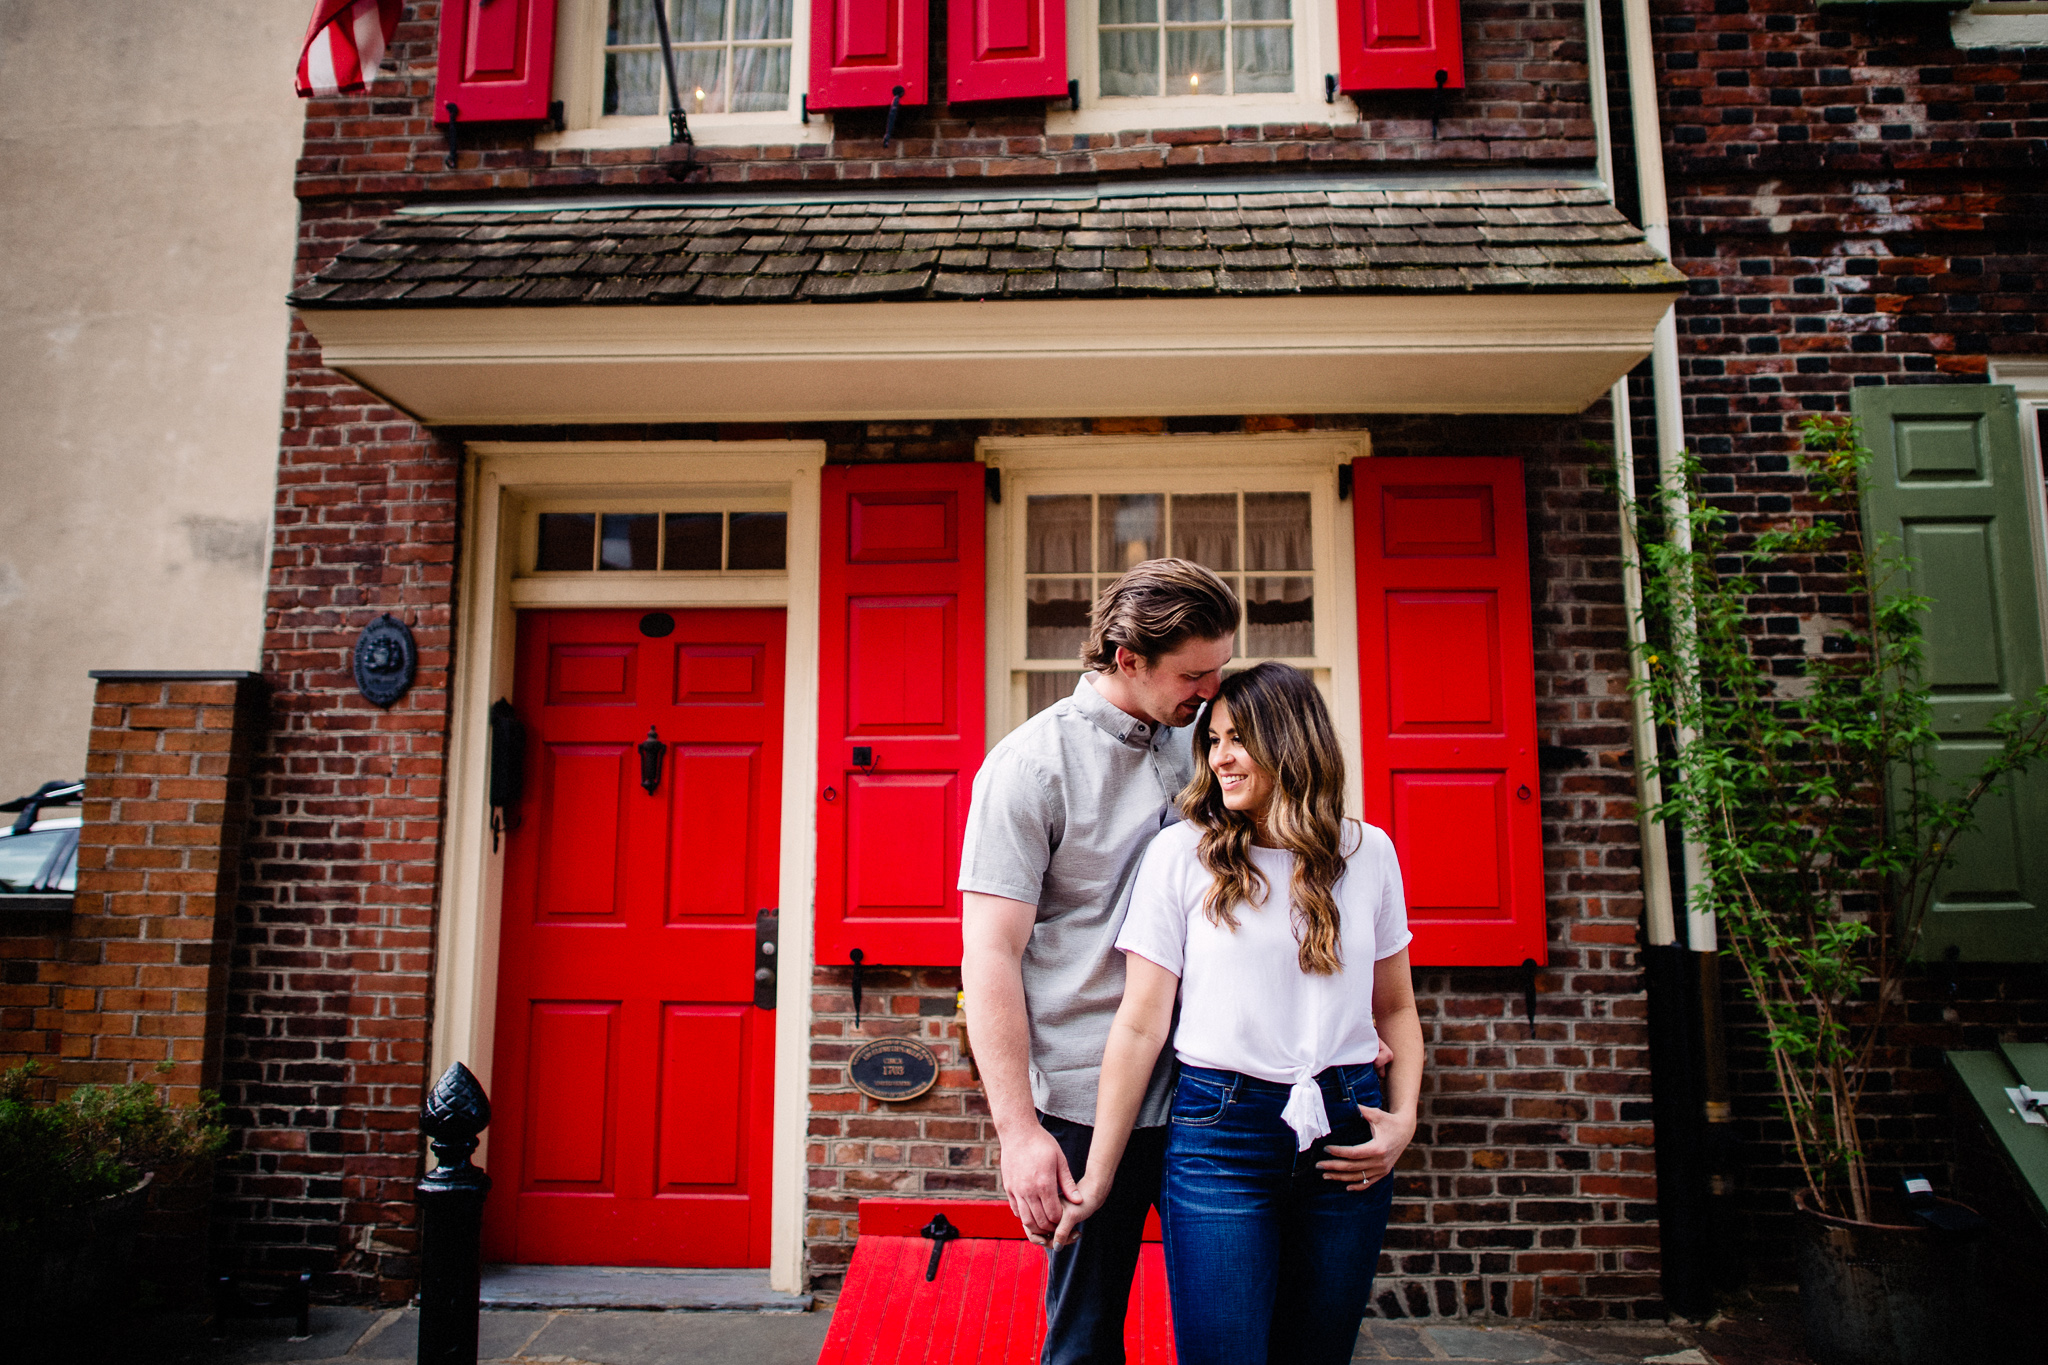 Philadelphia Old City Broad Street Engagement Photography-2019 -04-22-17-53-852_7533-Edit.jpg